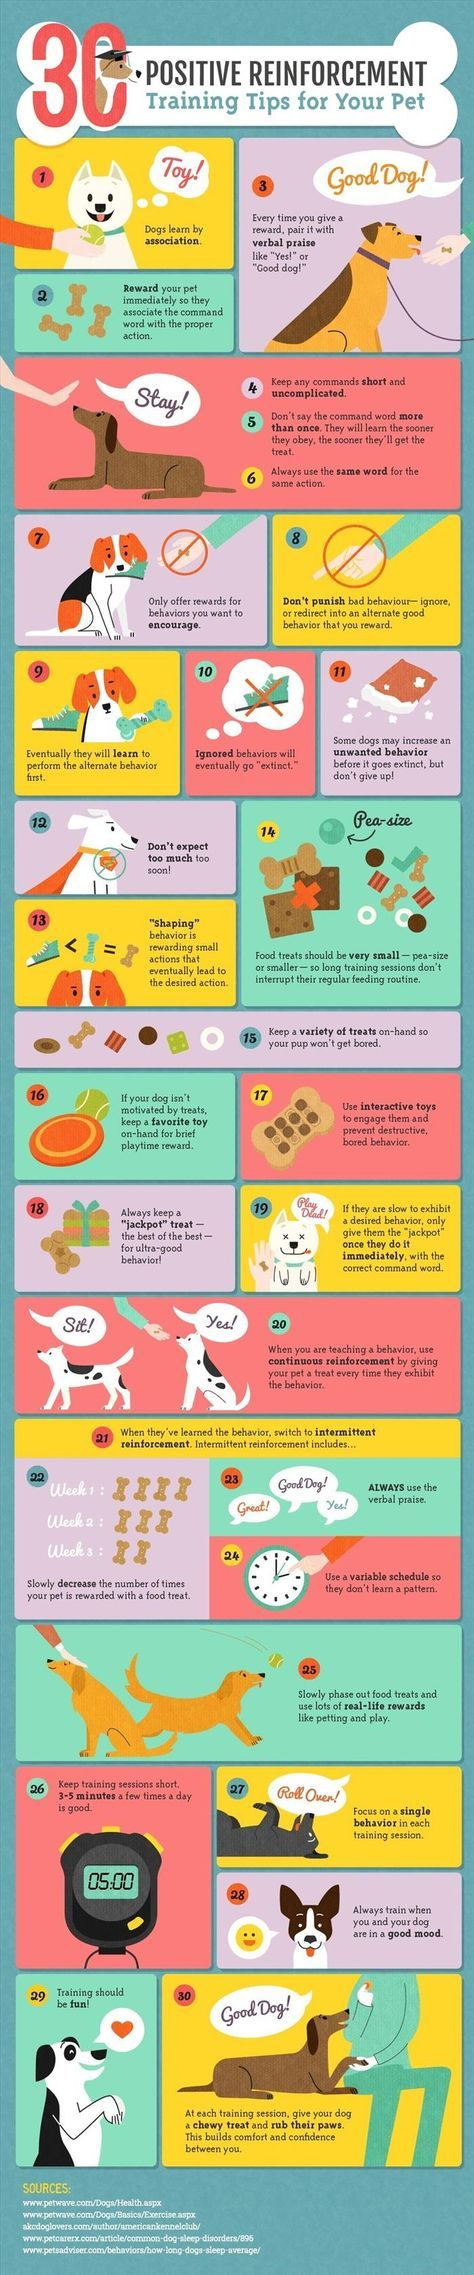 30 Positive Reinforcement Tips to Train Your Dog More